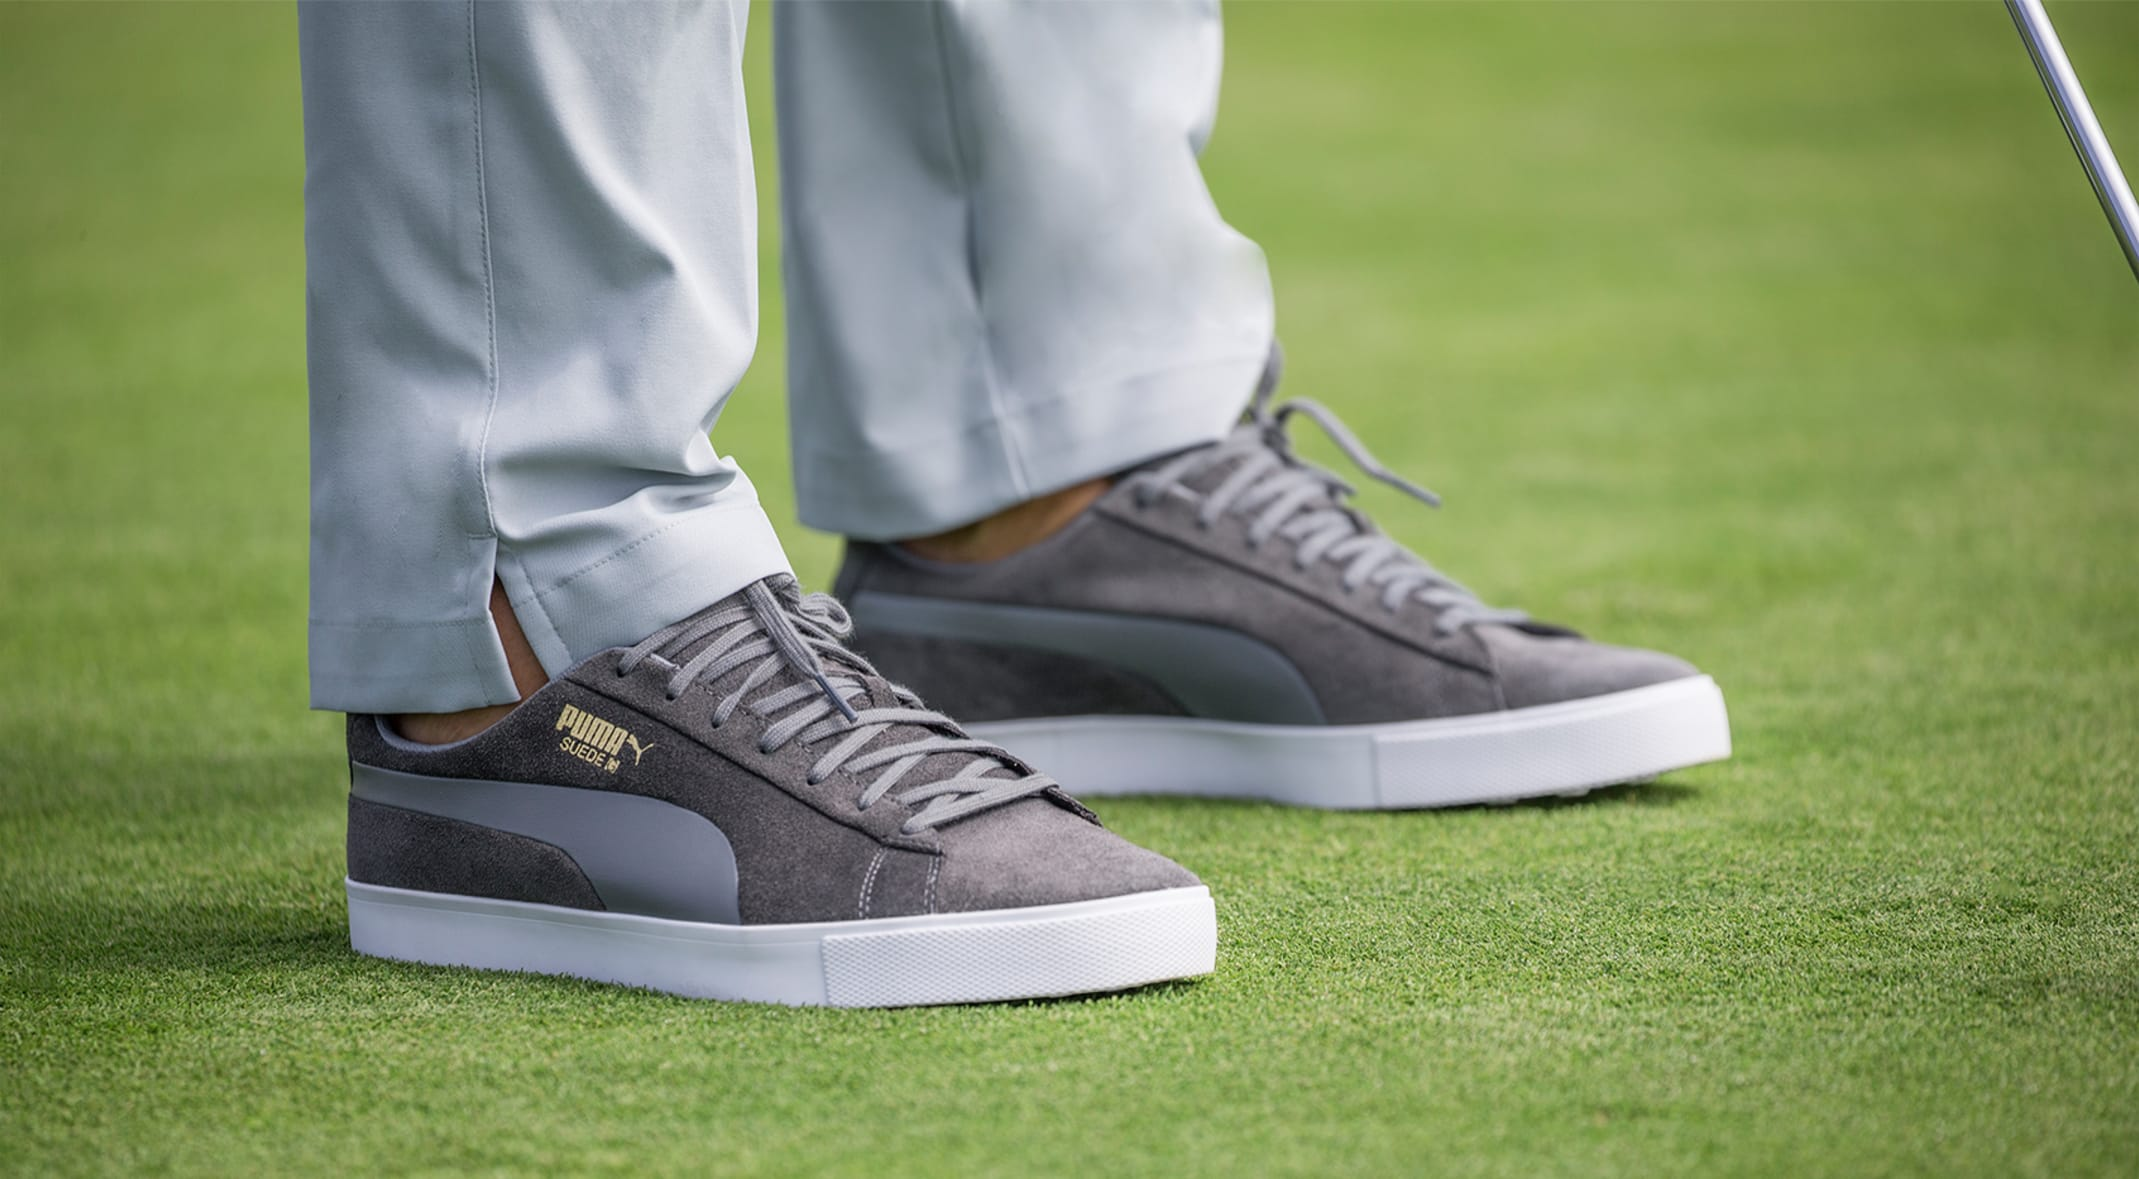 ede72d802d2b Puma introduced a spin on an old classic with the Suede G shoe.